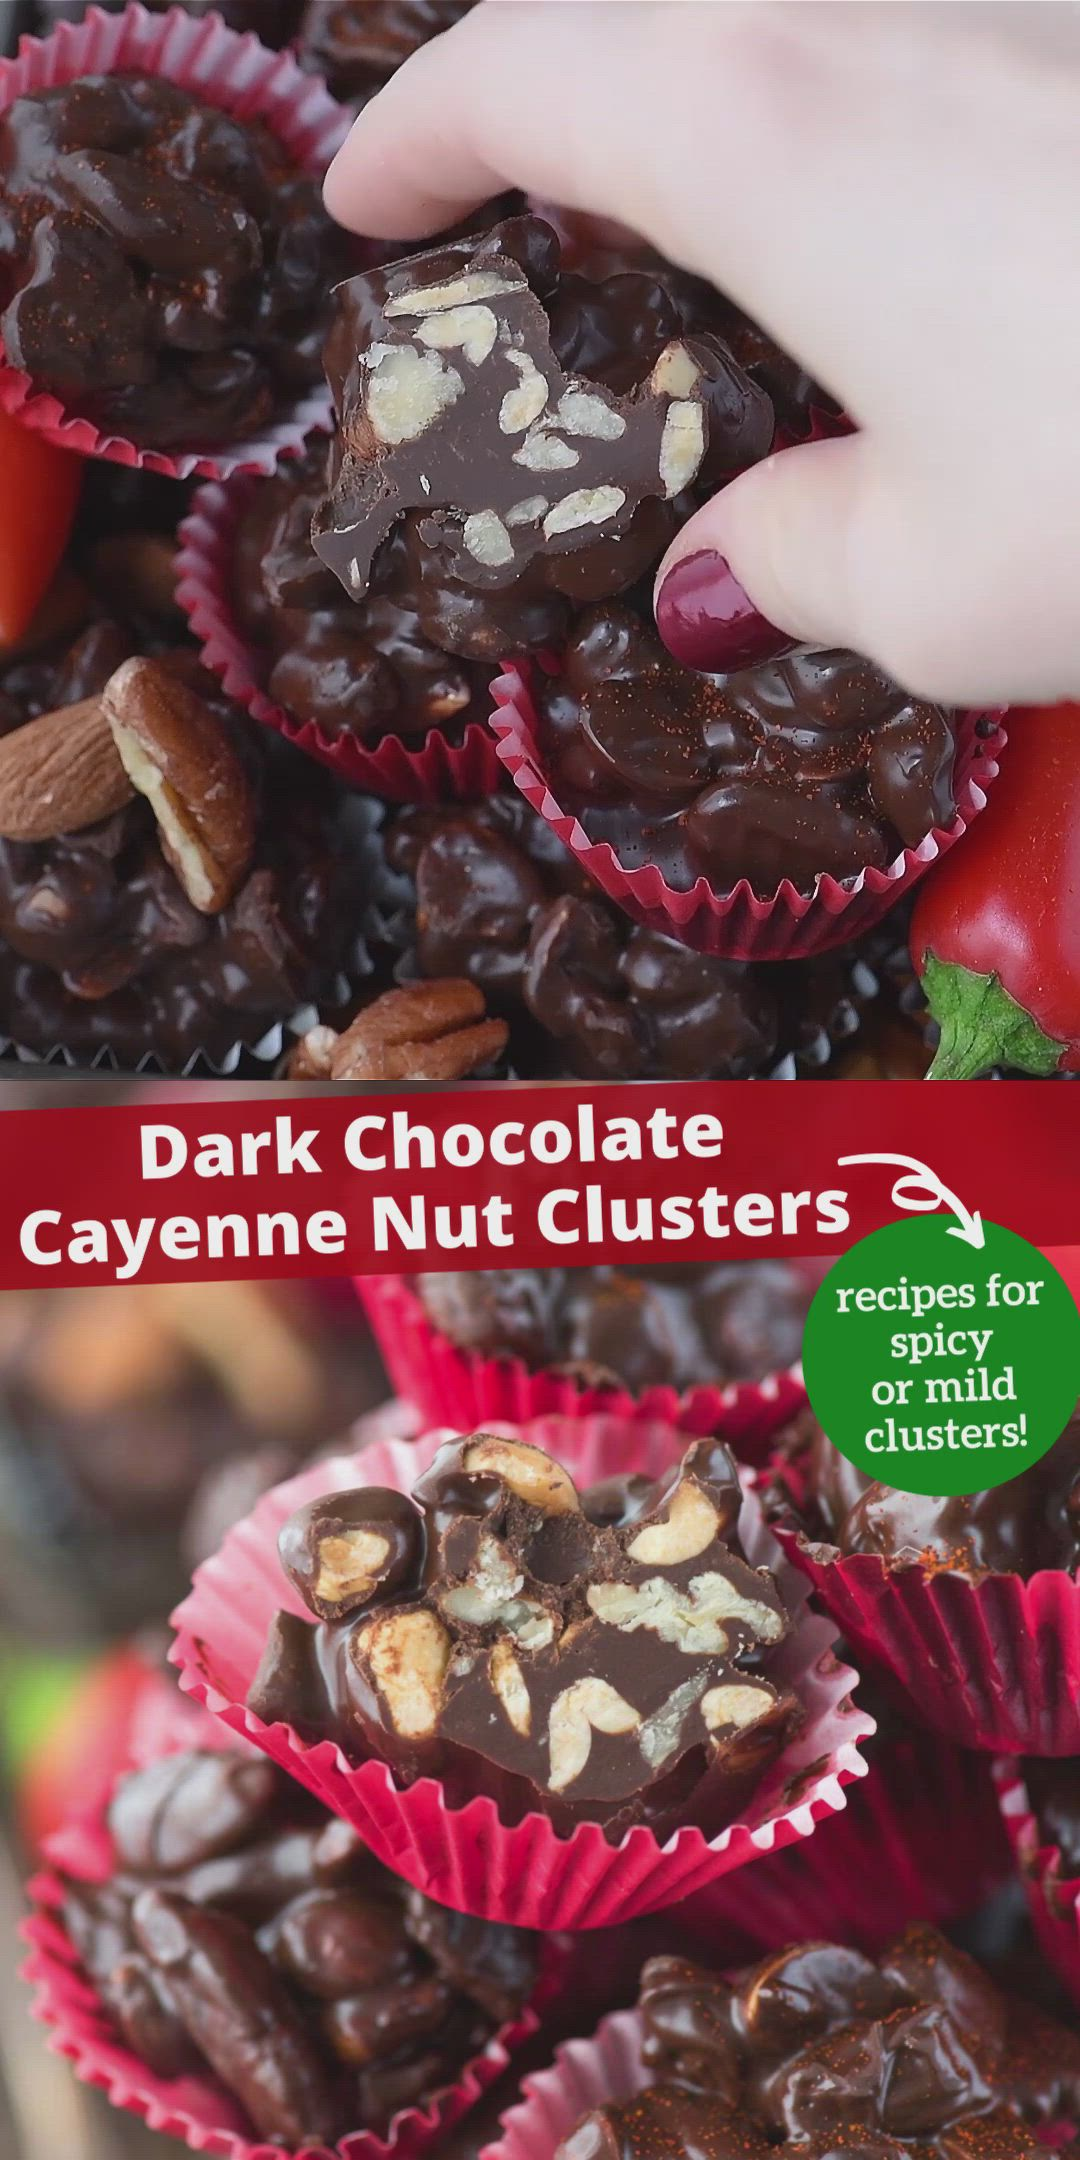 Dark Chocolate Cayenne Nut Clusters Video Spicy Chocolate Christmas Food Nut Recipes